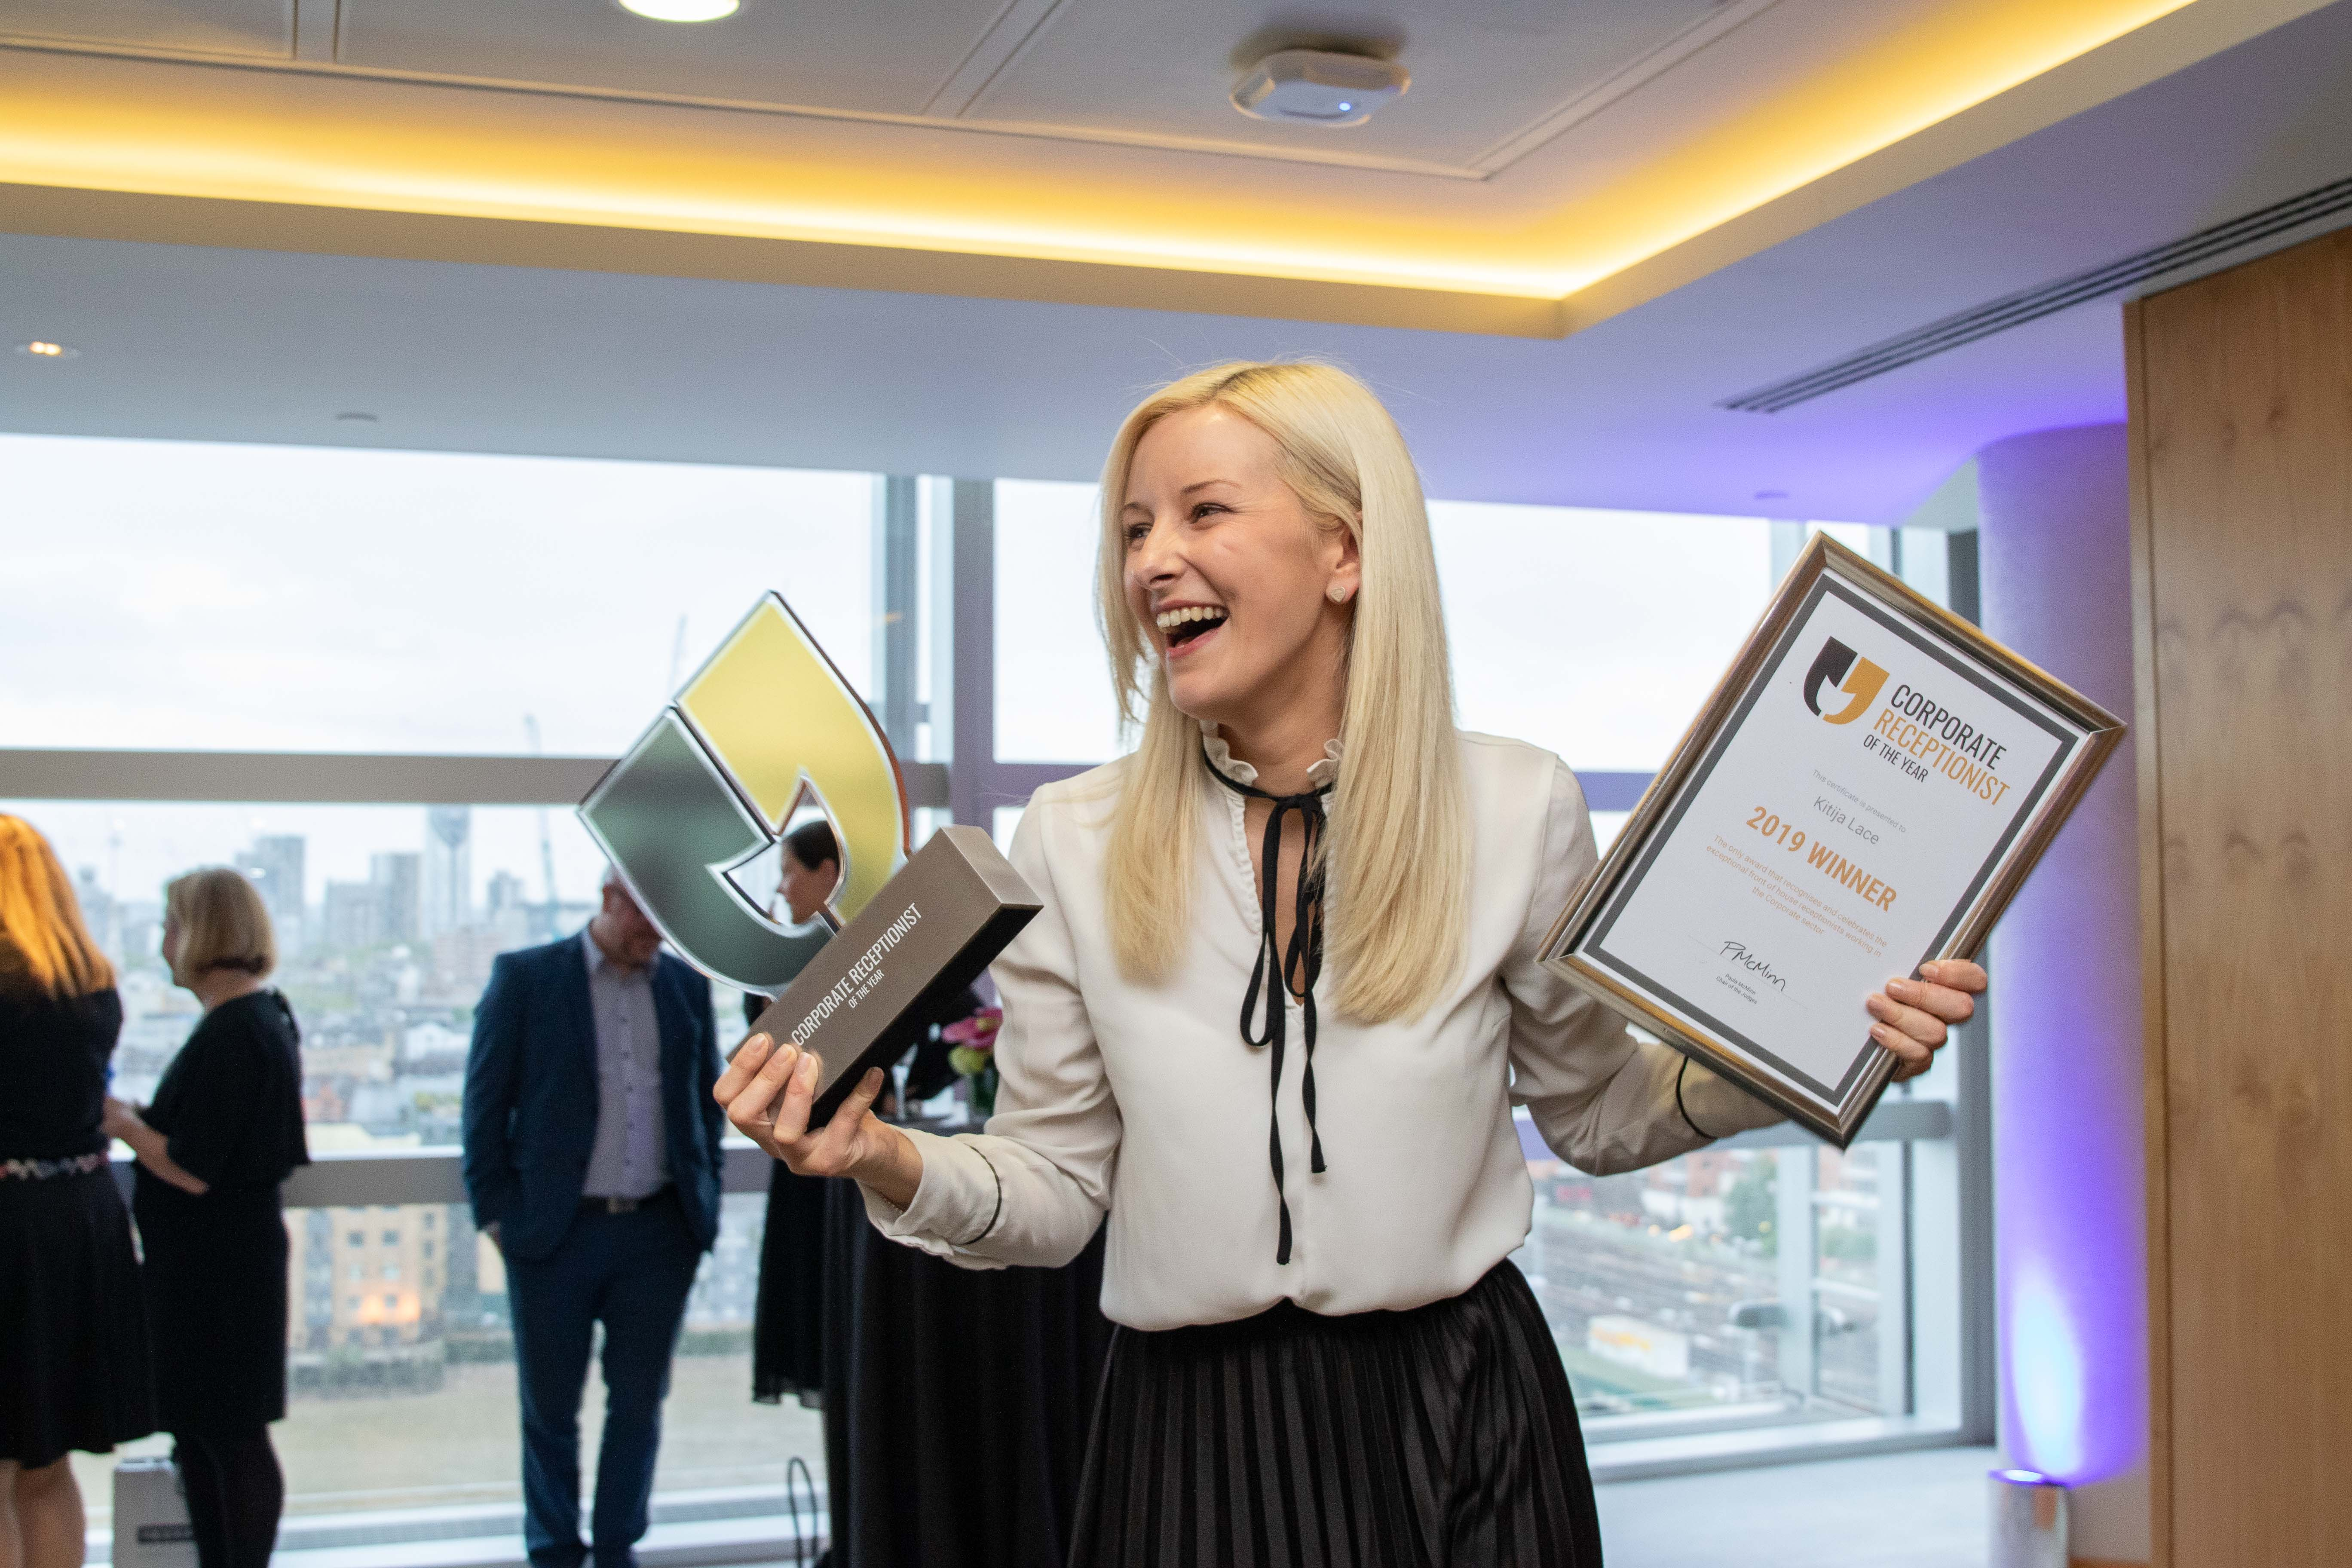 Winner, Kitija Lace laughing with her awards